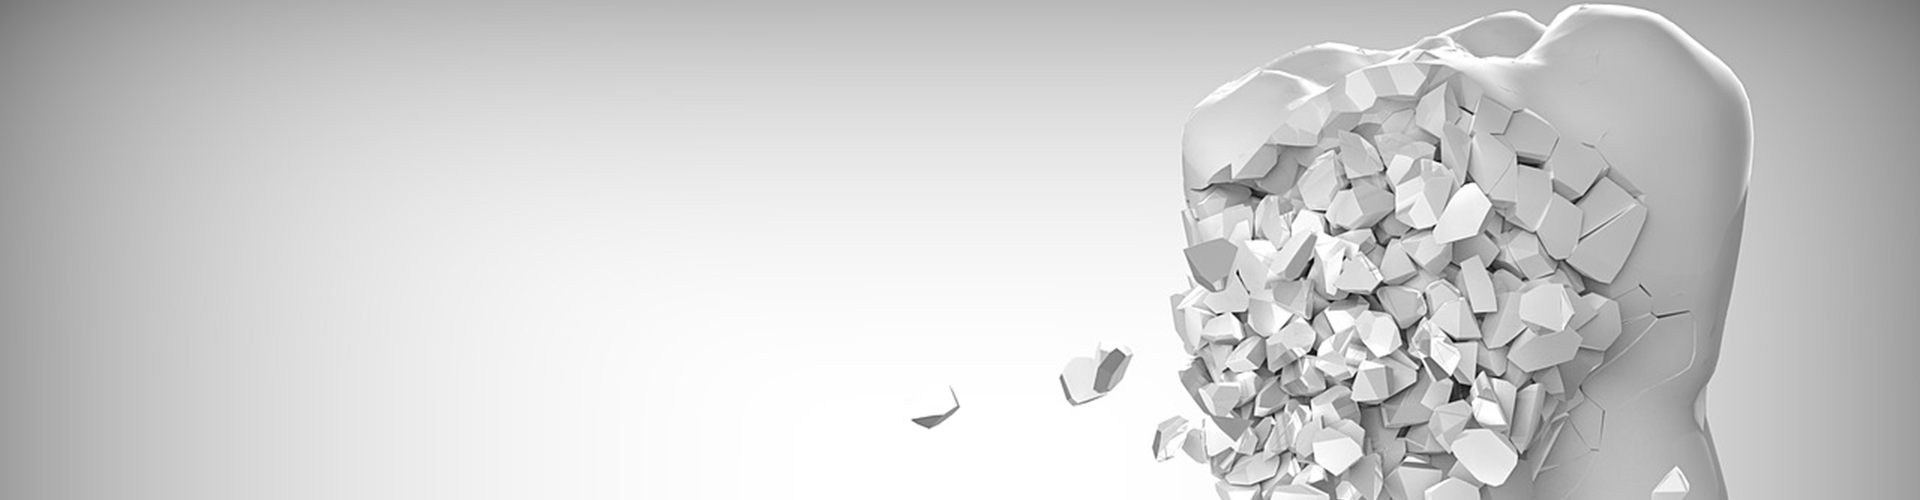 tooth_1920x500